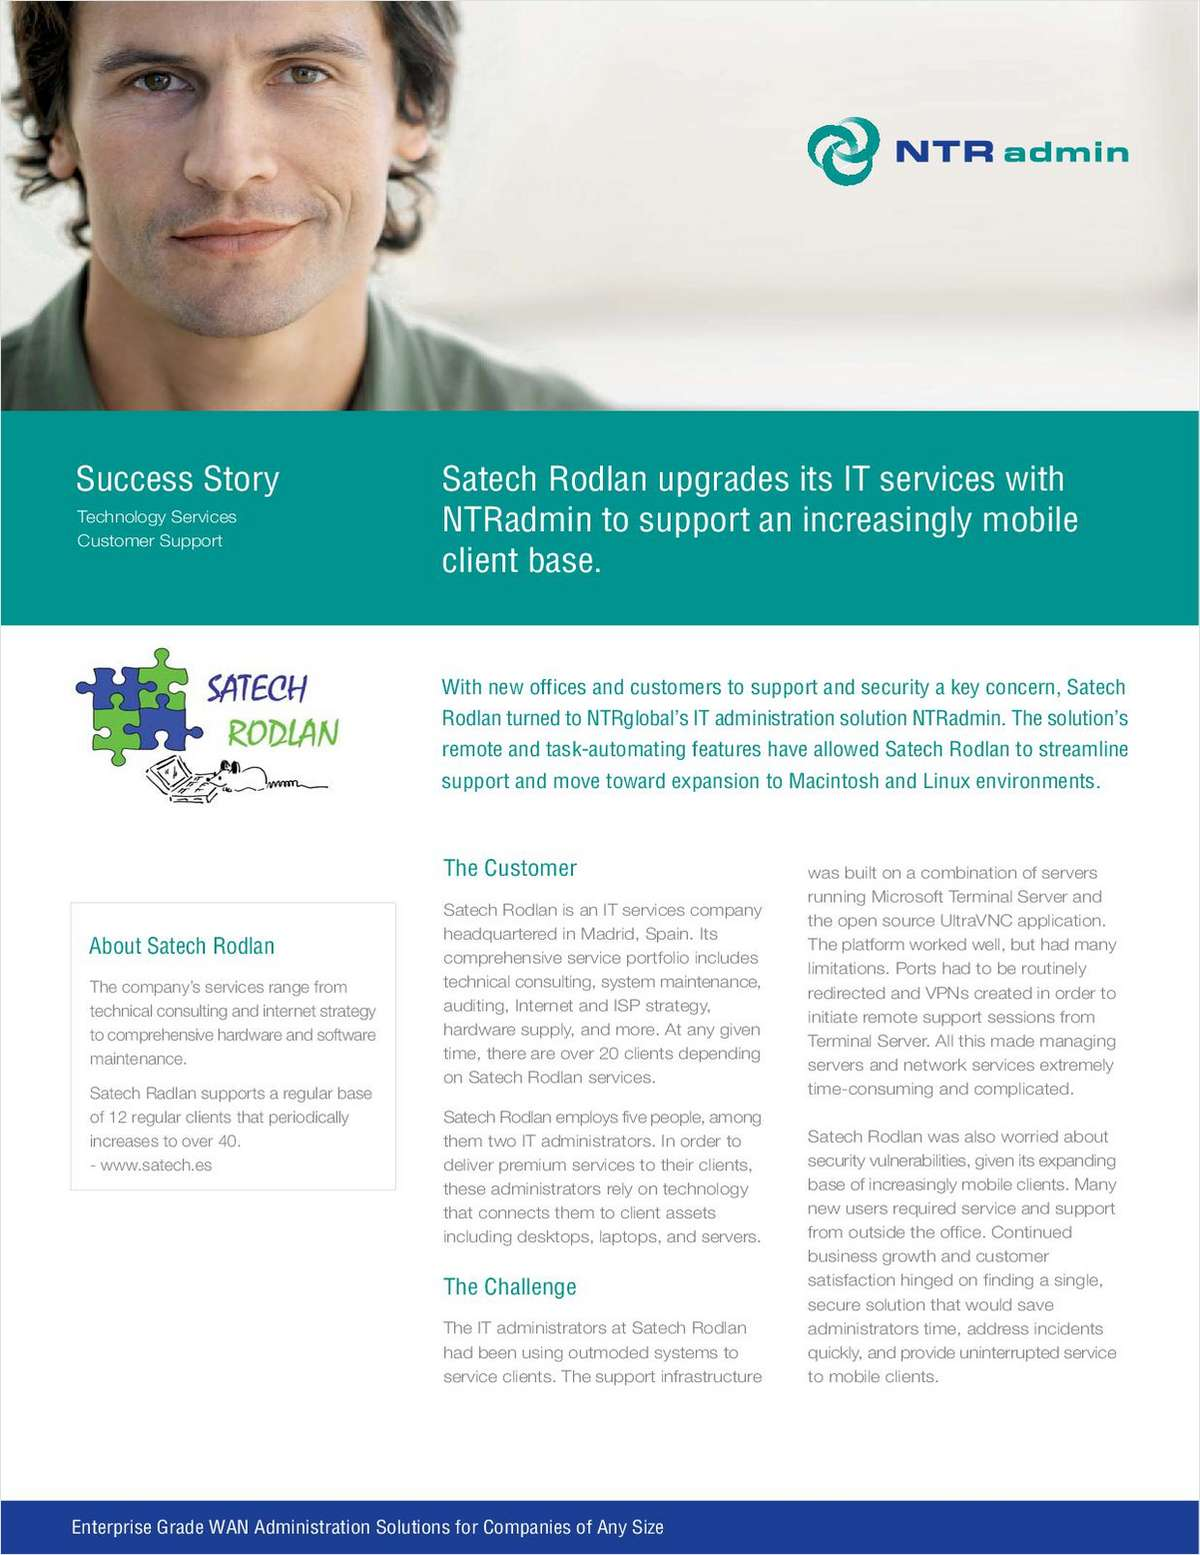 Satech Rodlan Upgrades its IT Services with NTRadmin to Support an Increasingly Mobile Client Base